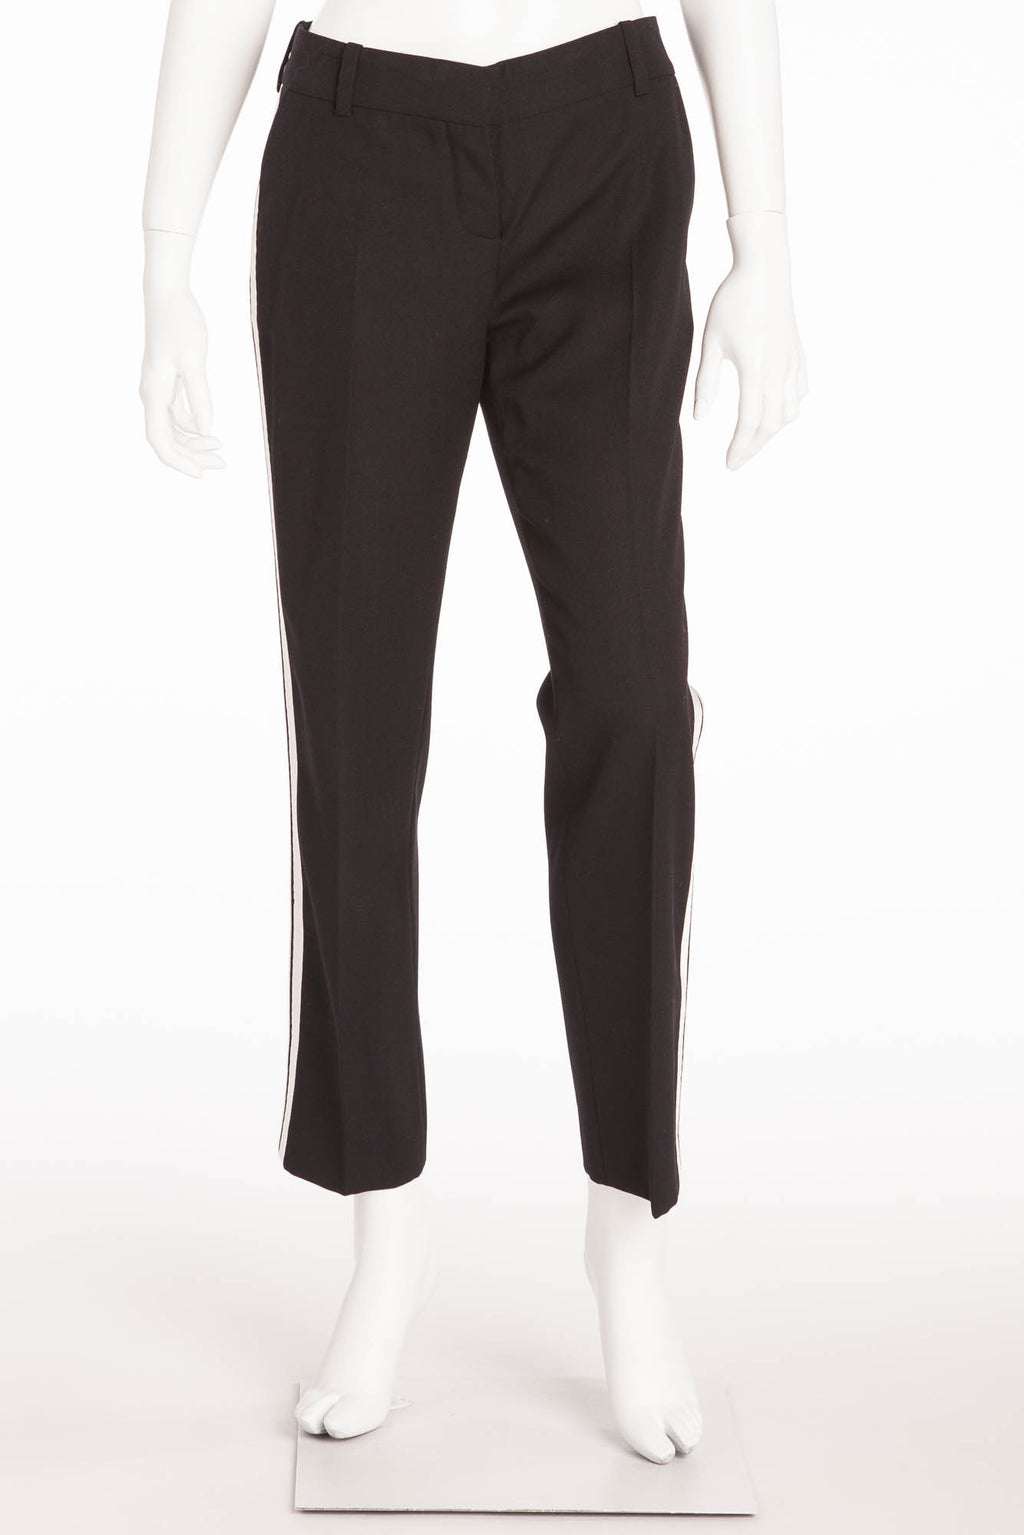 Balmain - Black  Tuxedo Style Skinny Dress Pants  - FR 40